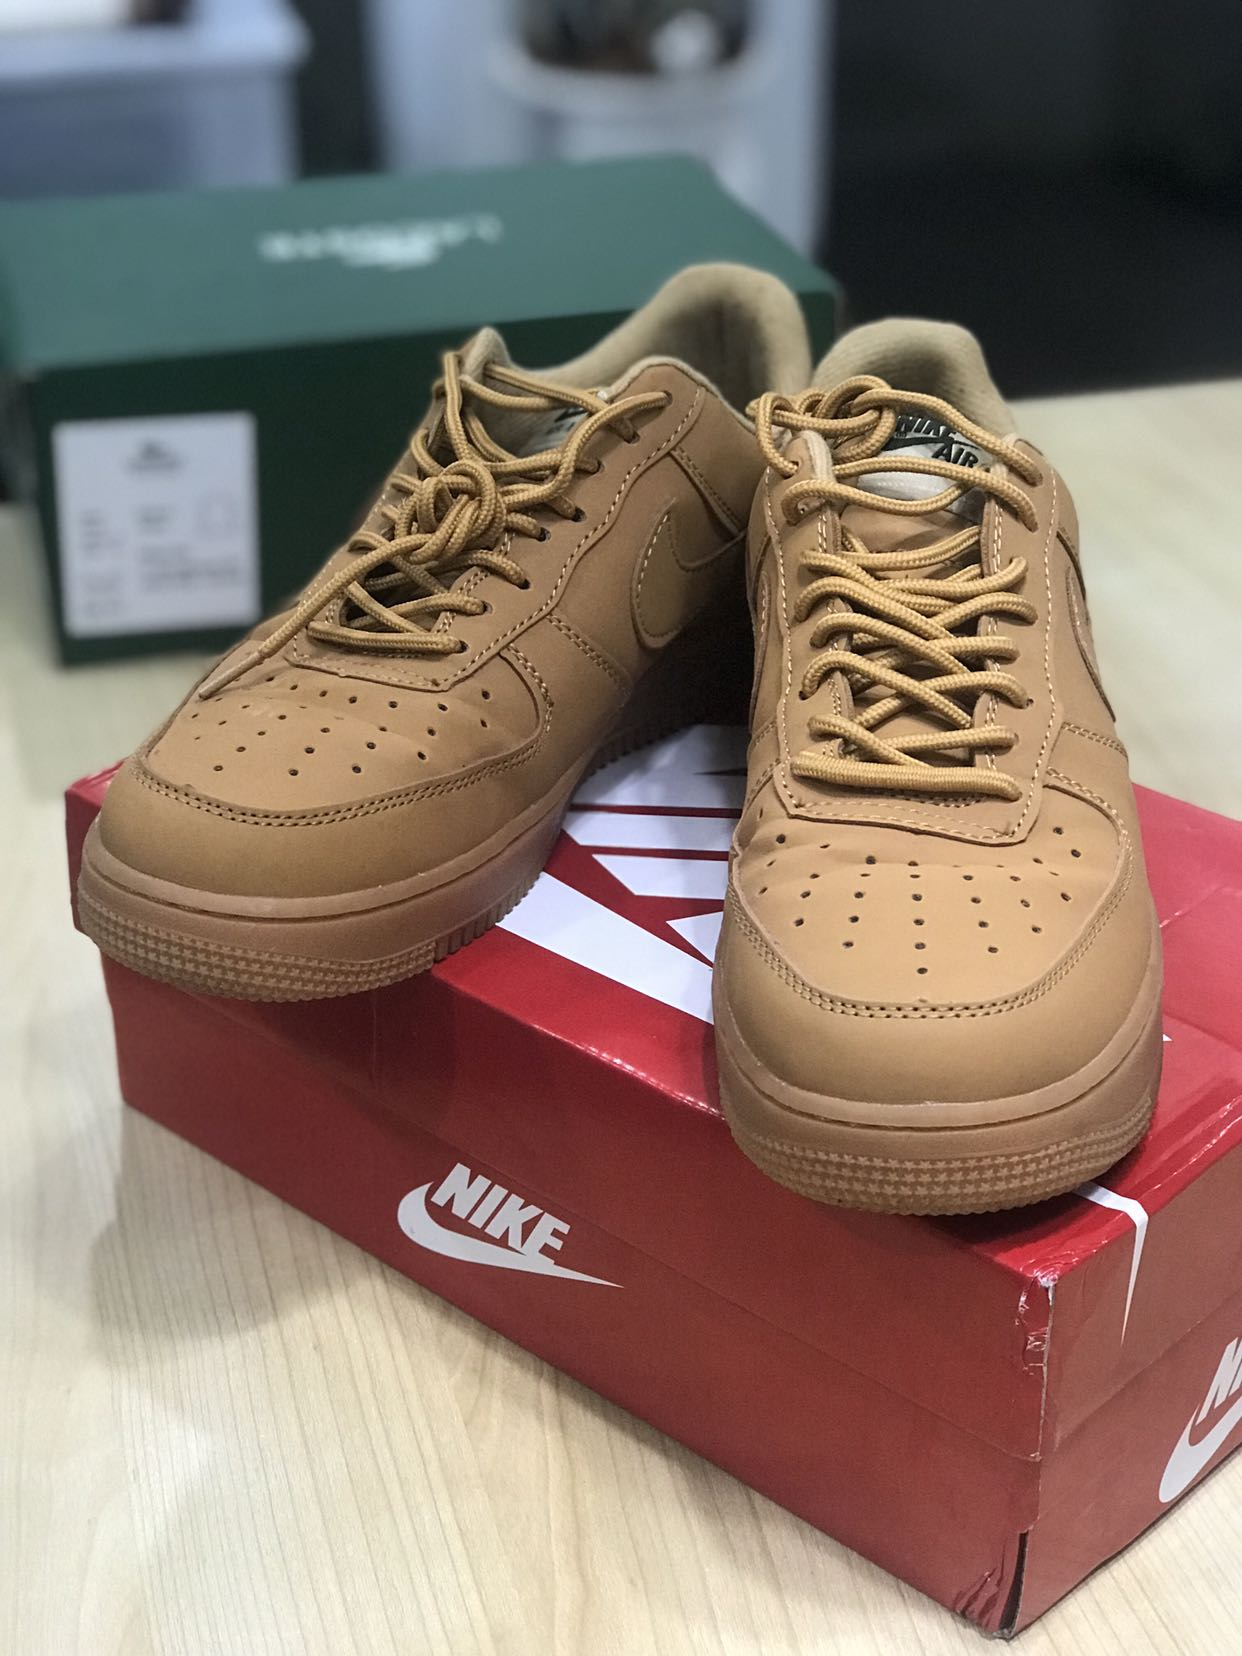 les ventes chaudes befd0 89769 Nike Air Force 1 - Camel